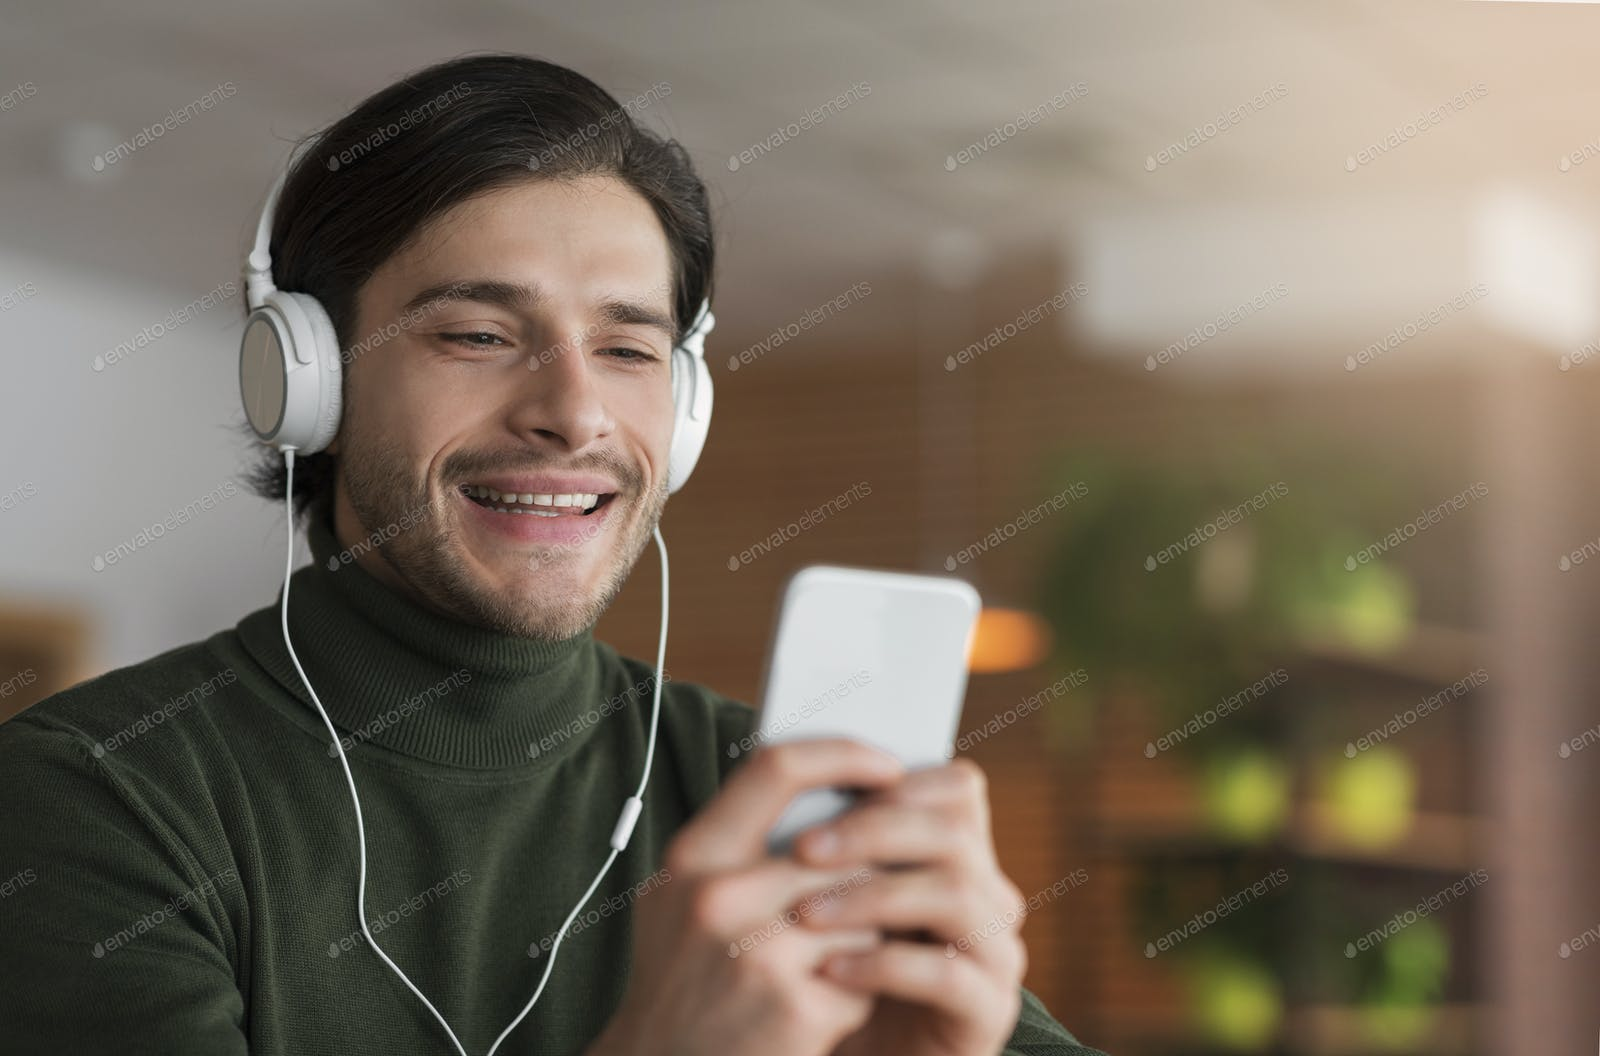 Cheerful Guy In Headset Having Video Call Using Phone Photo By Prostock Studio On Envato Elements